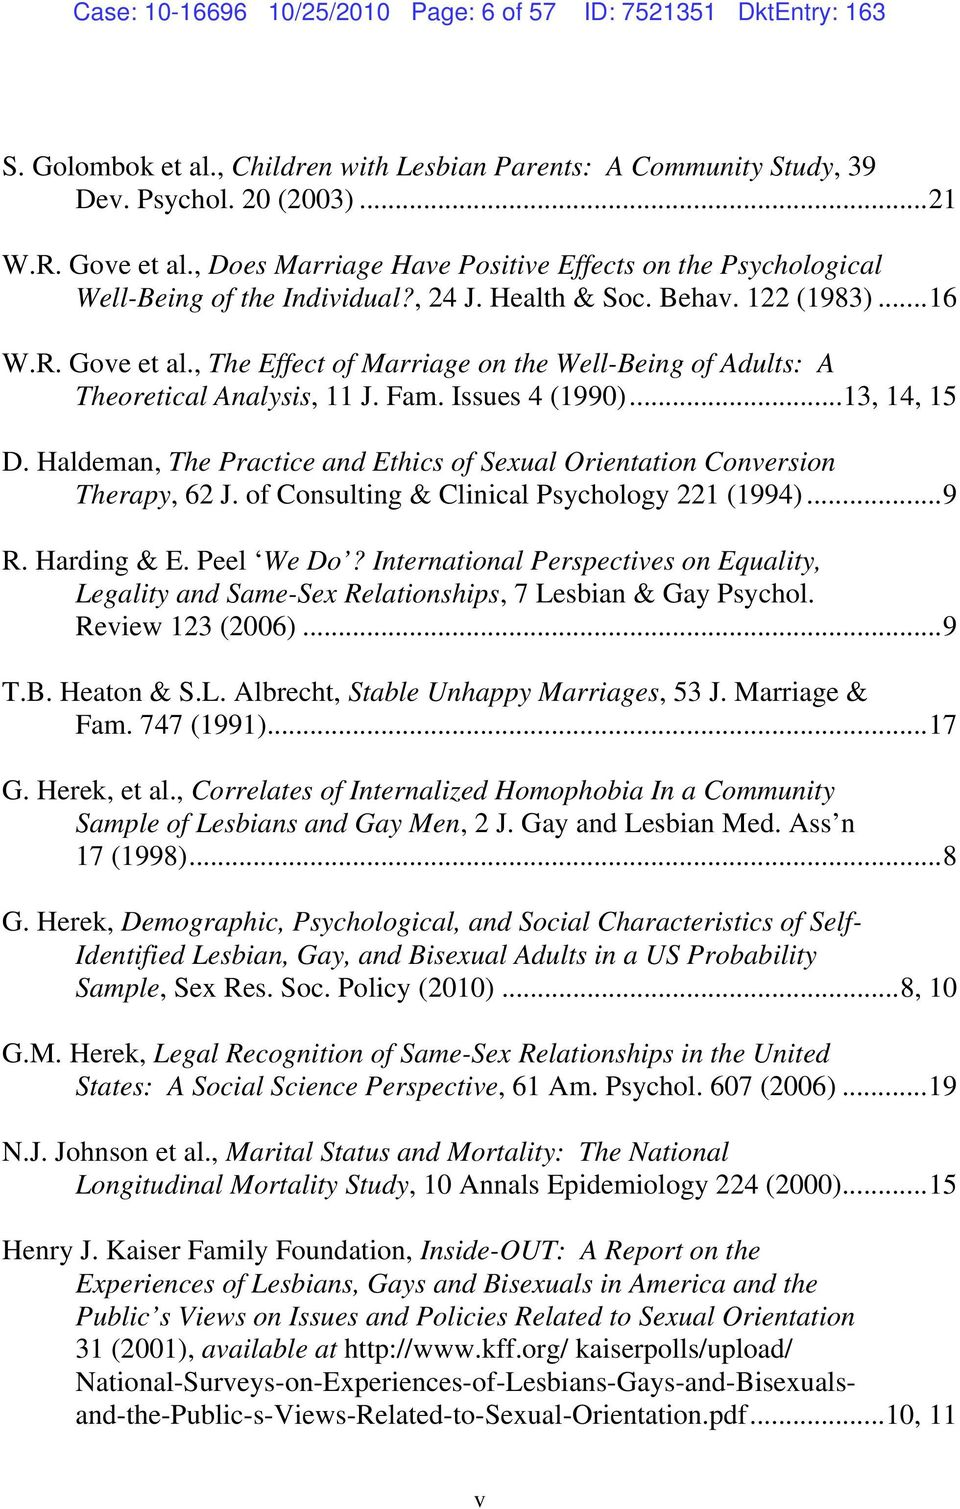 Psychological analysis on same sex parenting